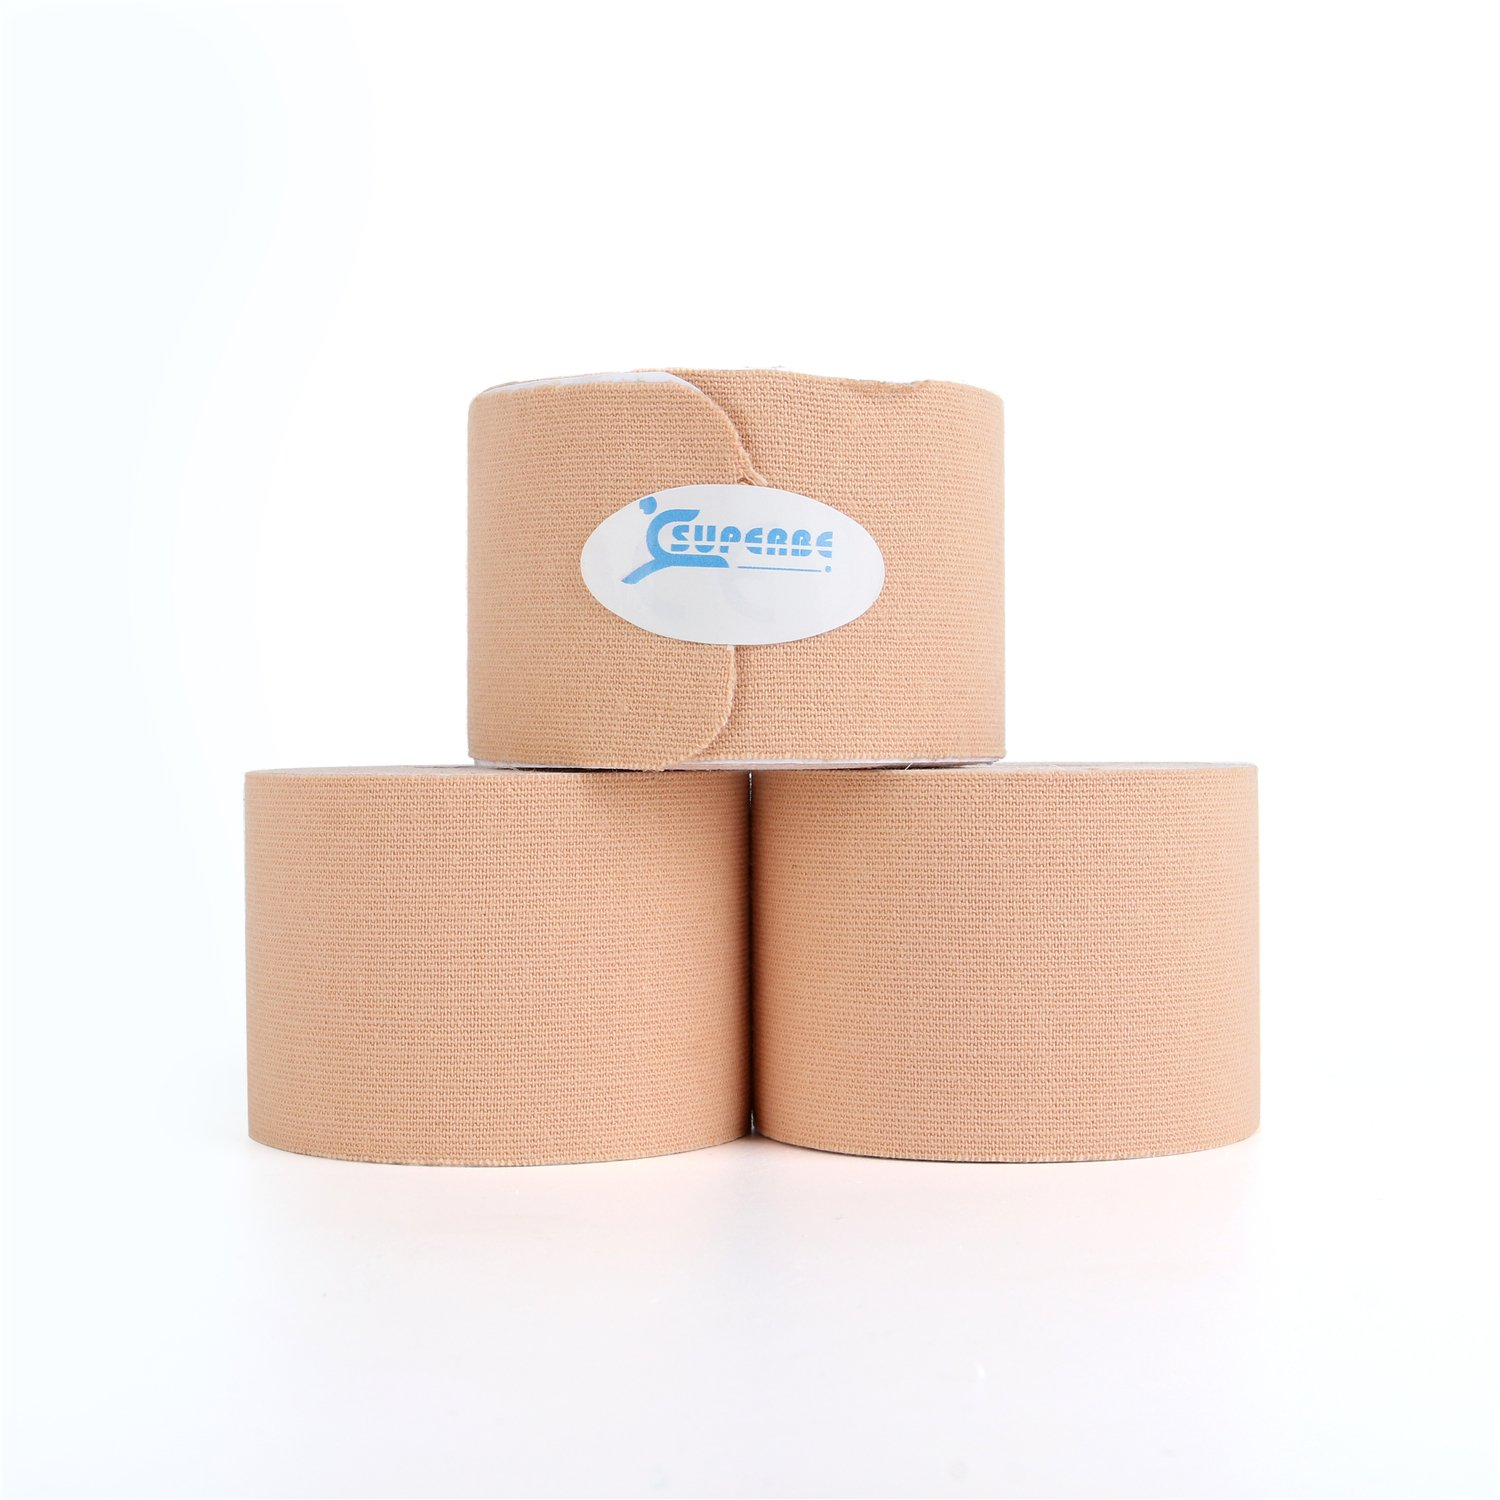 Superbe Precut Kinesiology Tape (3 Rolls Pack), Elastic Sports Tape for Pain Relief, Muscle Support, Recovery and Physio Therapy, Breathable, Waterproof, 2 Inch x 16.4 feet (Beige)